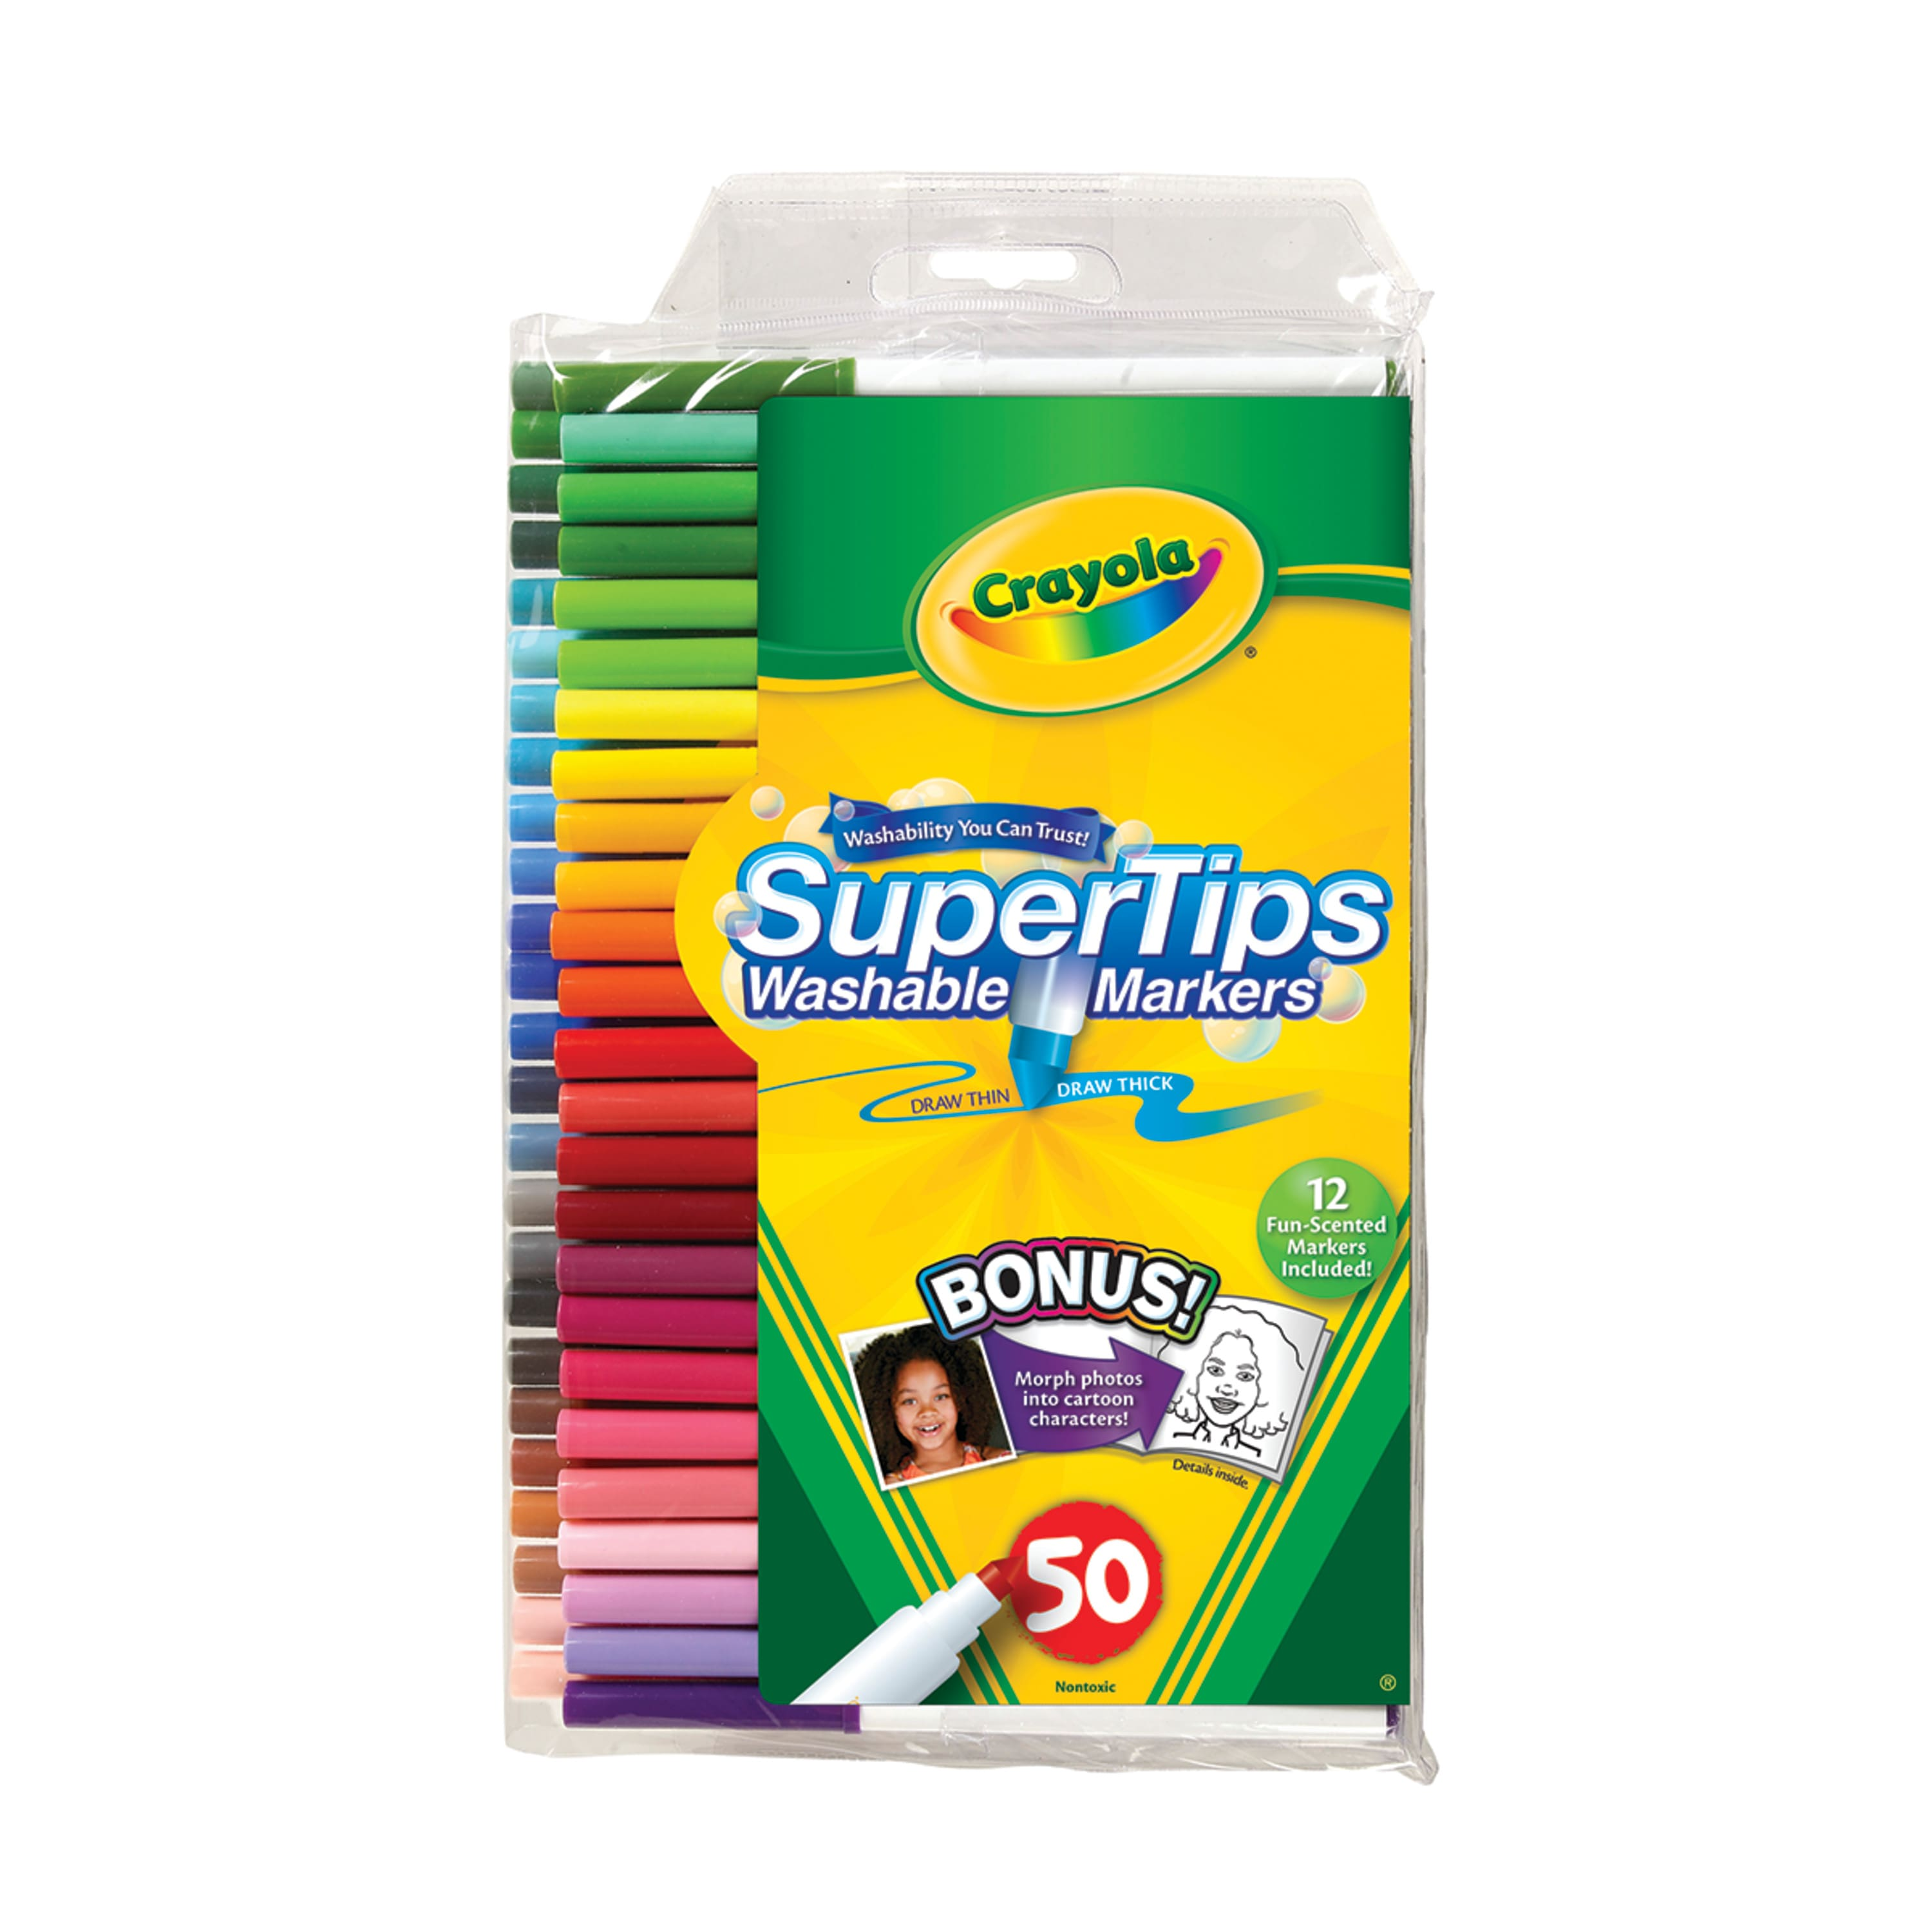 Crayola Super Tips Markers, Washable Markers, Gift, 50 Count (list $12.99) $6.97